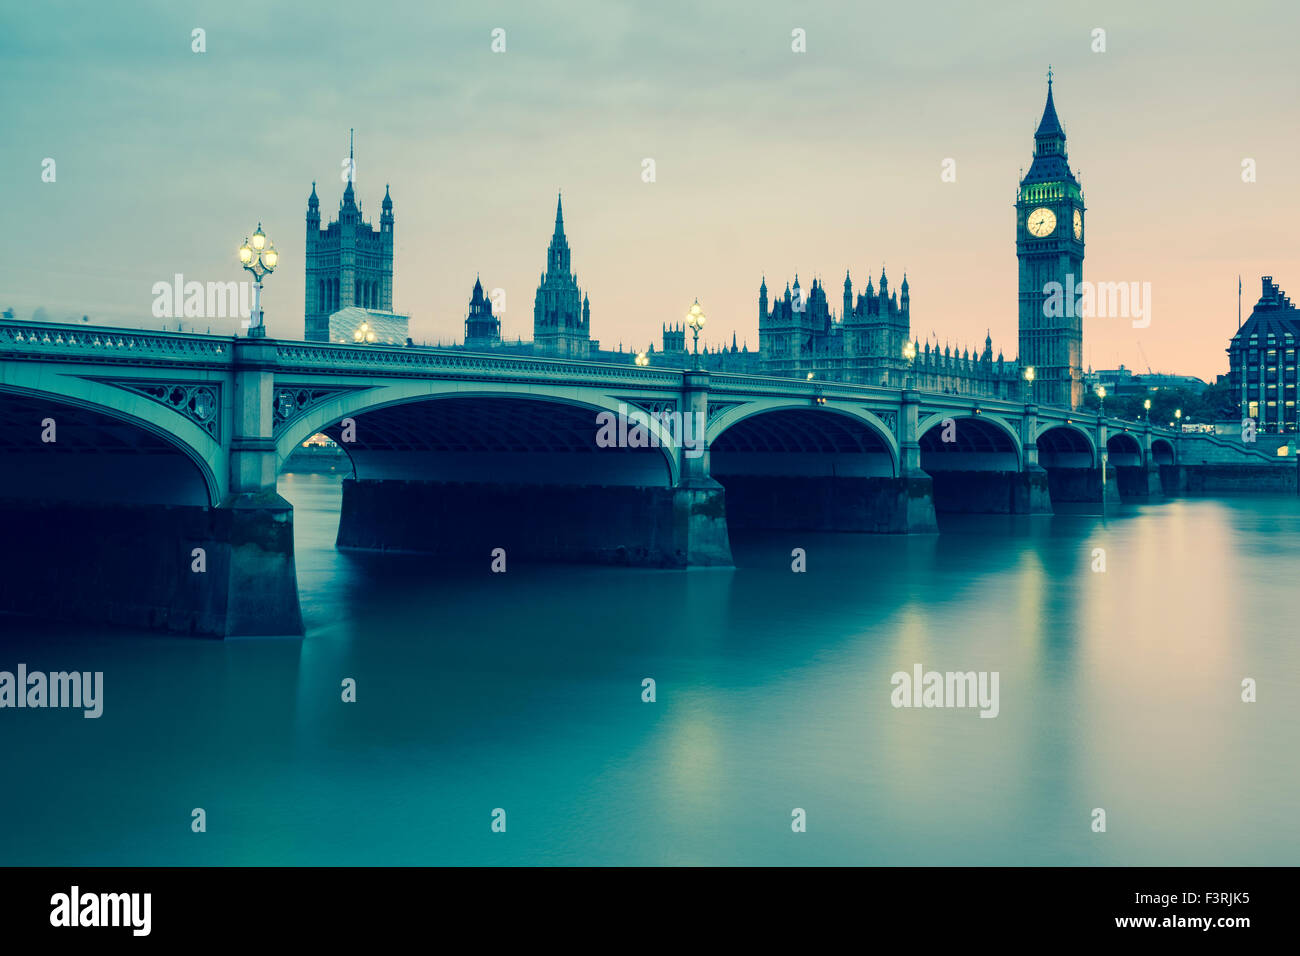 Westminster Bridge, Palace of Westminster and Big Ben, London, United Kingdom - Stock Image